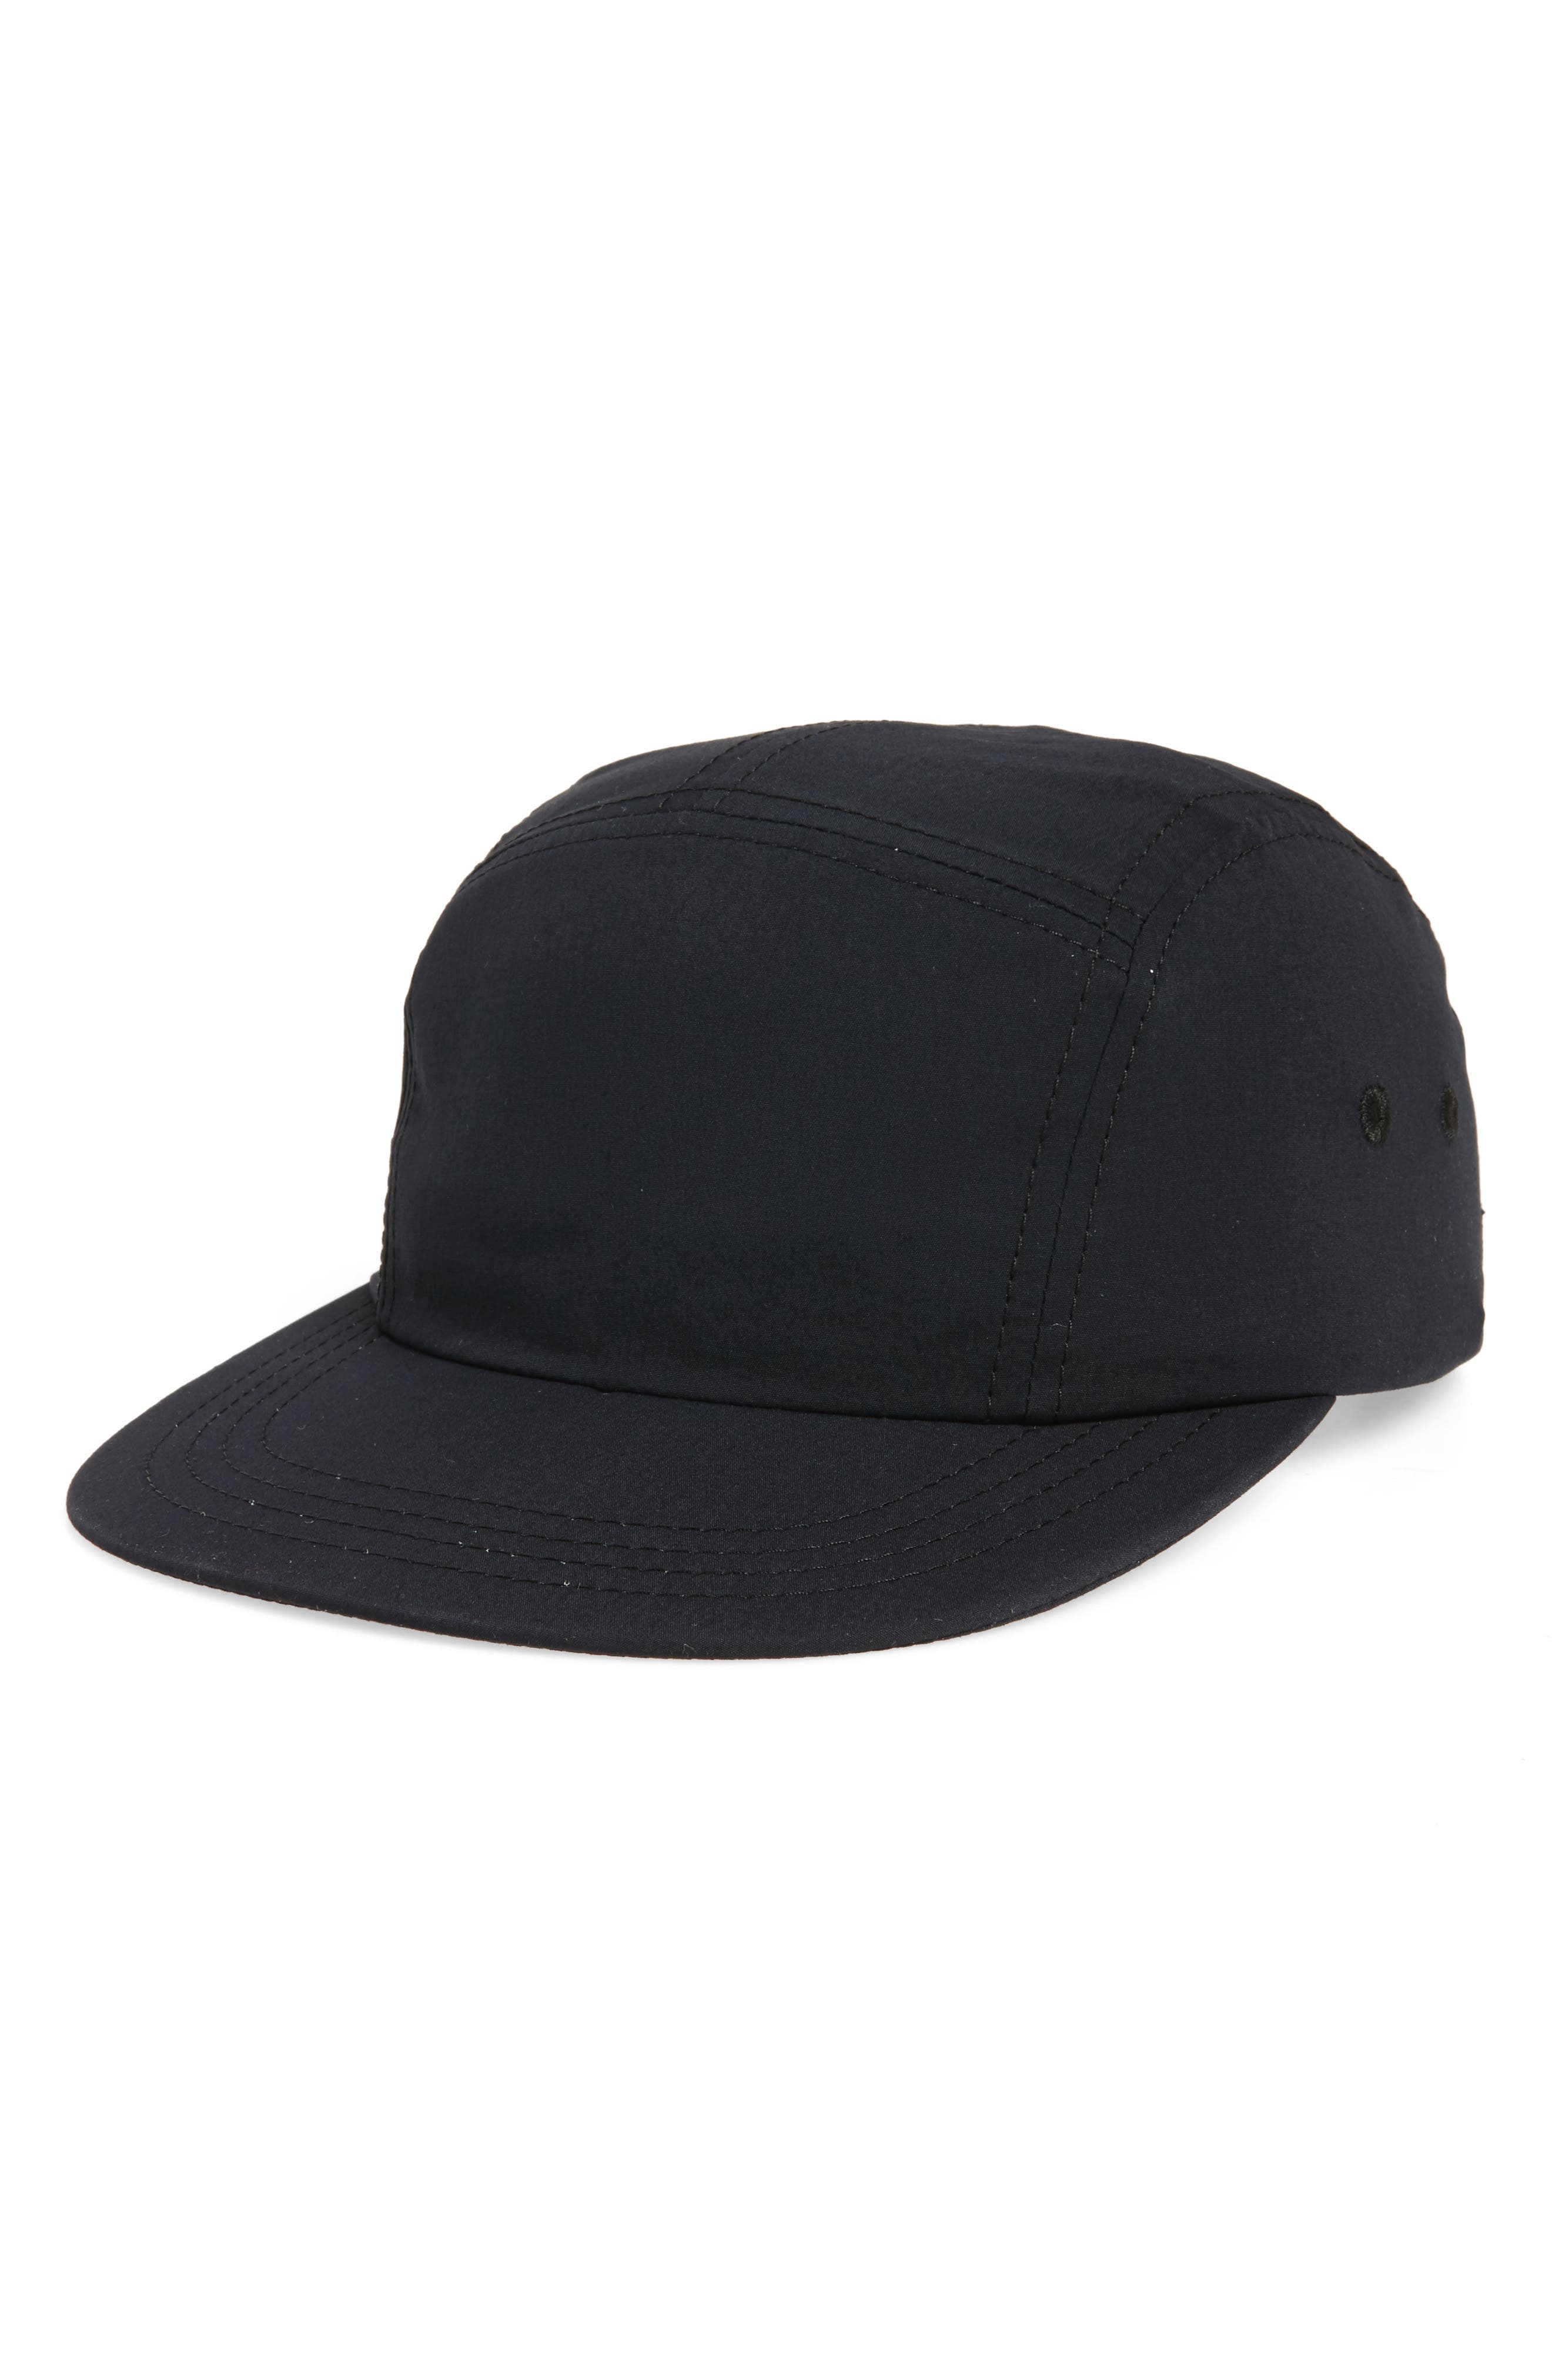 Five Panel Nylon Camp Hat,                         Main,                         color, Black